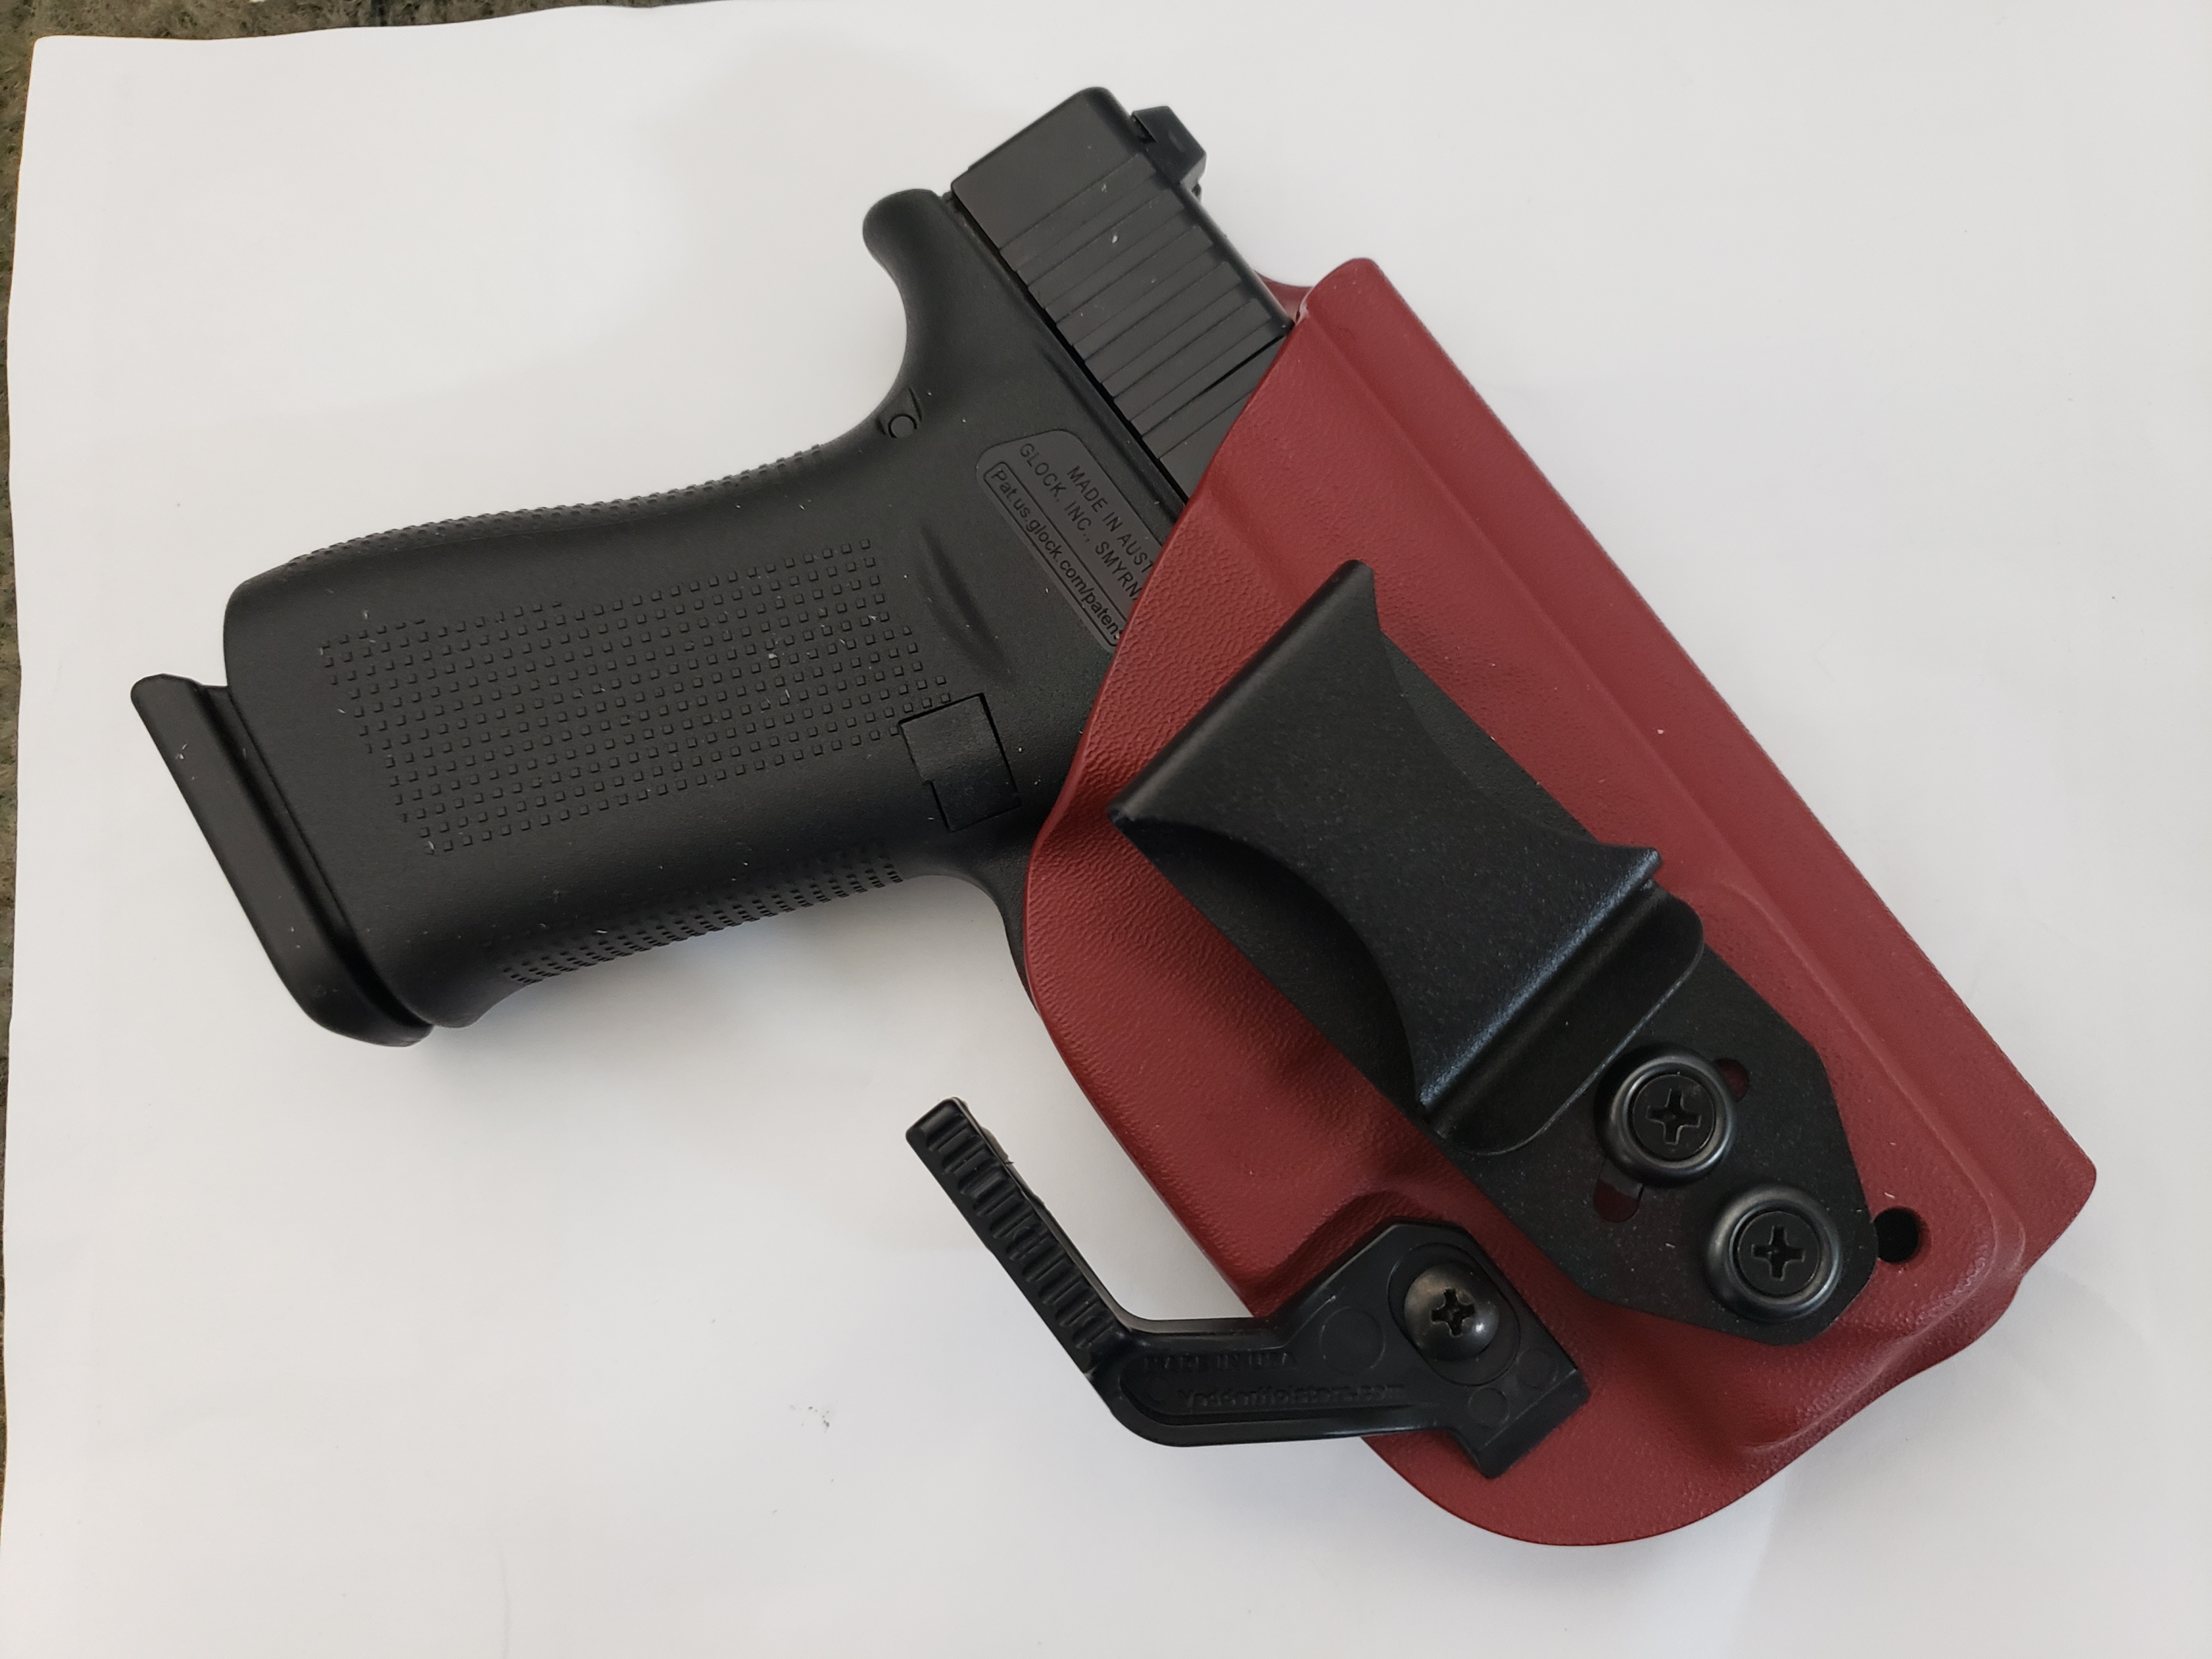 Anybody get anything good that's firearm related today?-20200112_204212.jpg